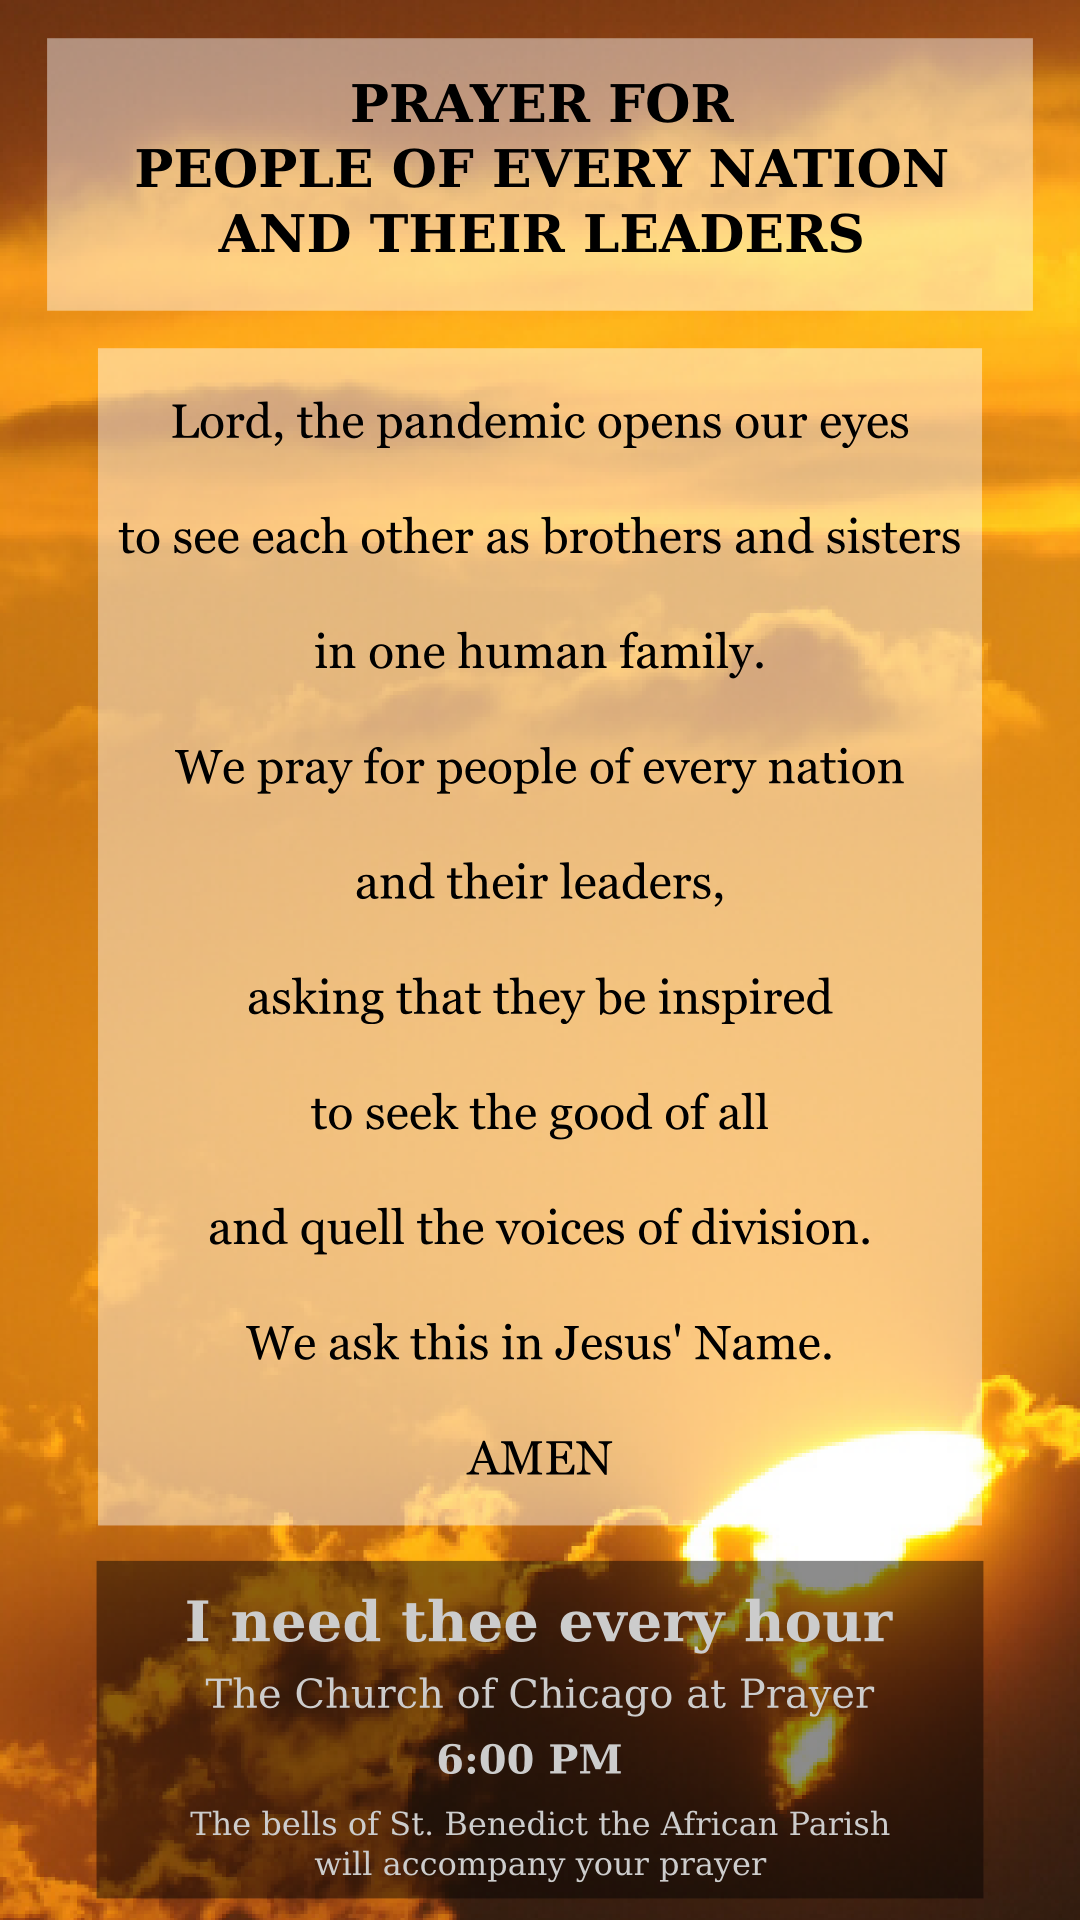 Prayer card for people of every nation and their leaders